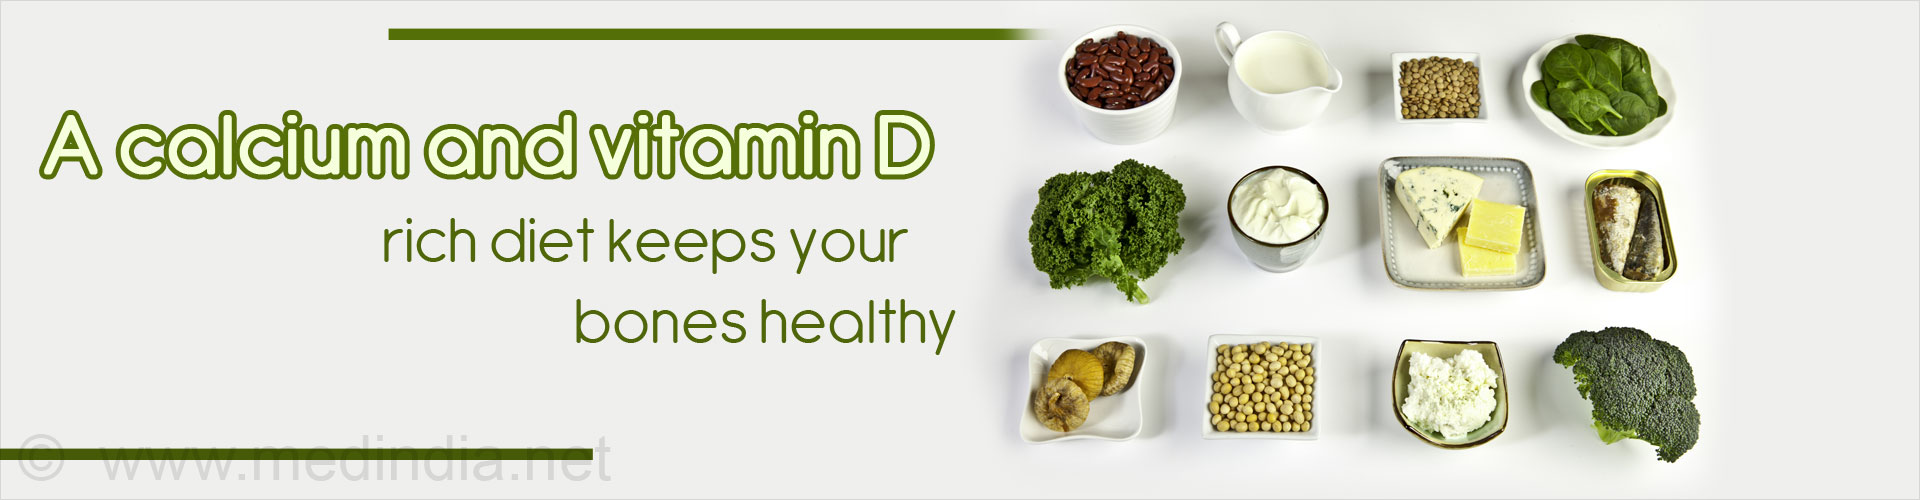 Including adequate calcium and vitamin D in the diet helps maintain healthy bone